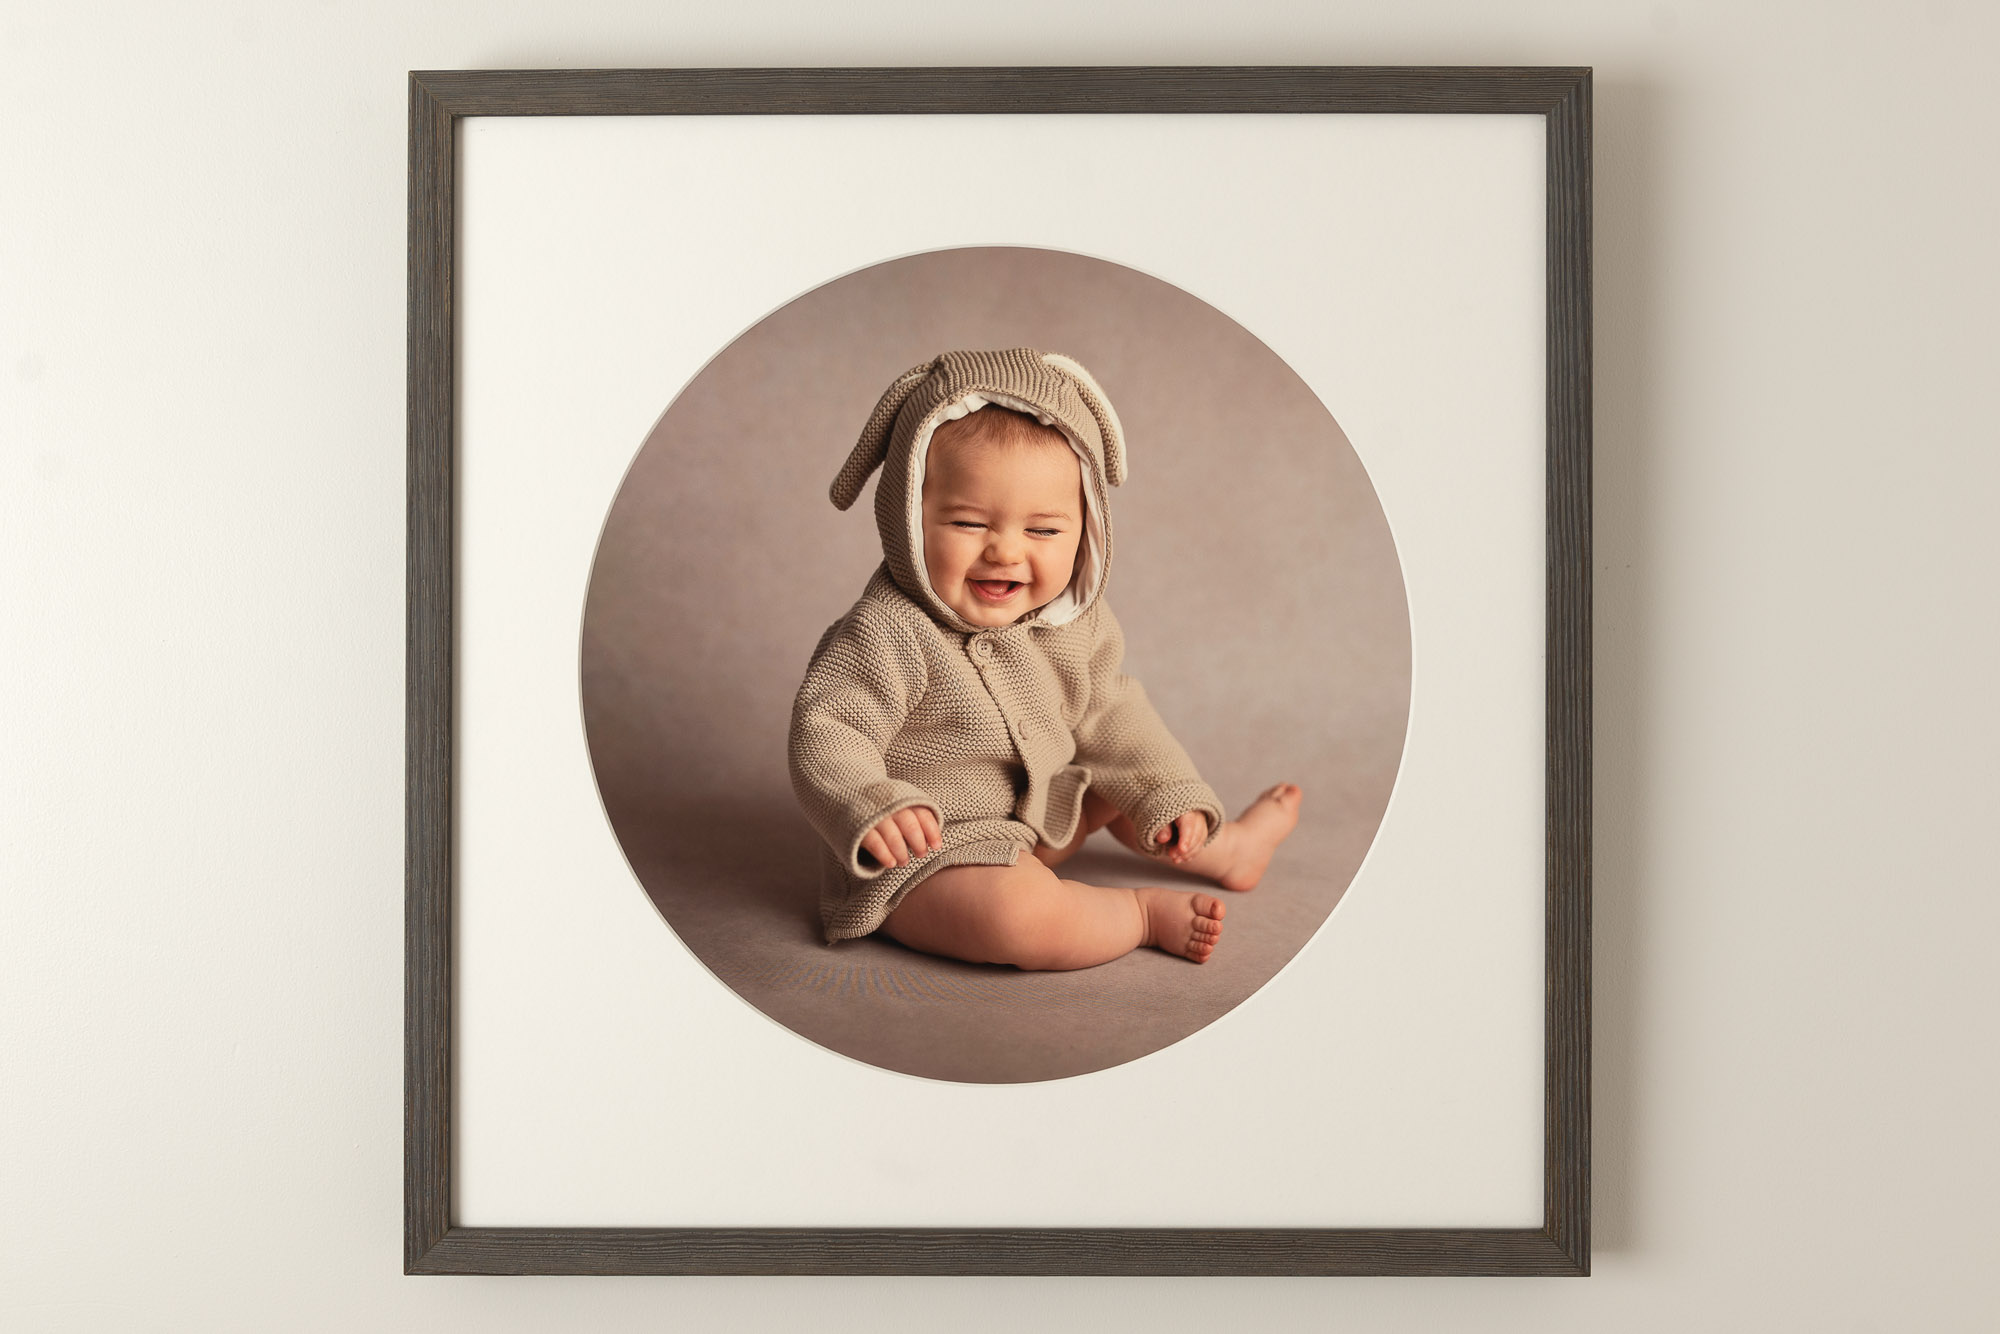 framed image of laughing baby